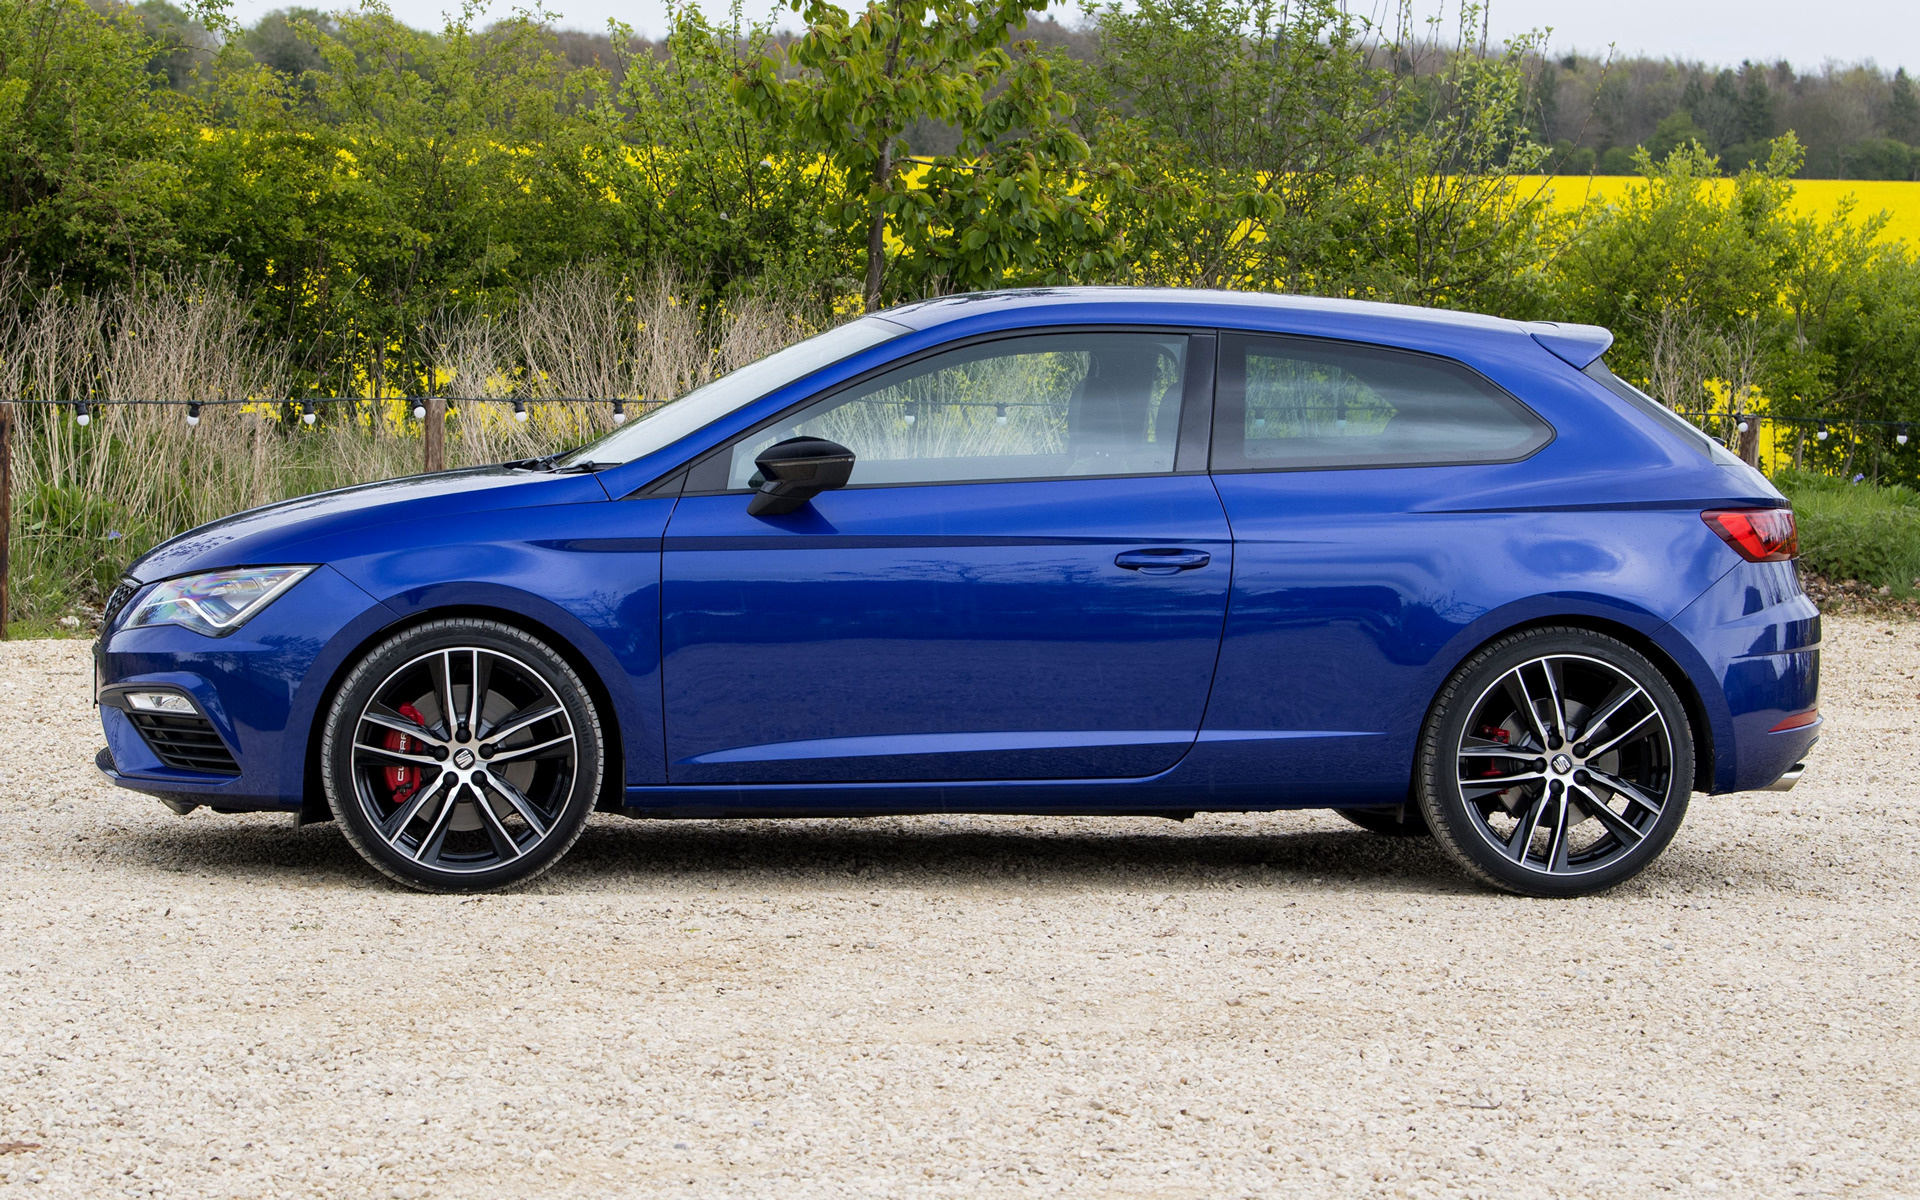 seat leon sc cupra 300 2017 uk wallpapers and hd images car pixel. Black Bedroom Furniture Sets. Home Design Ideas